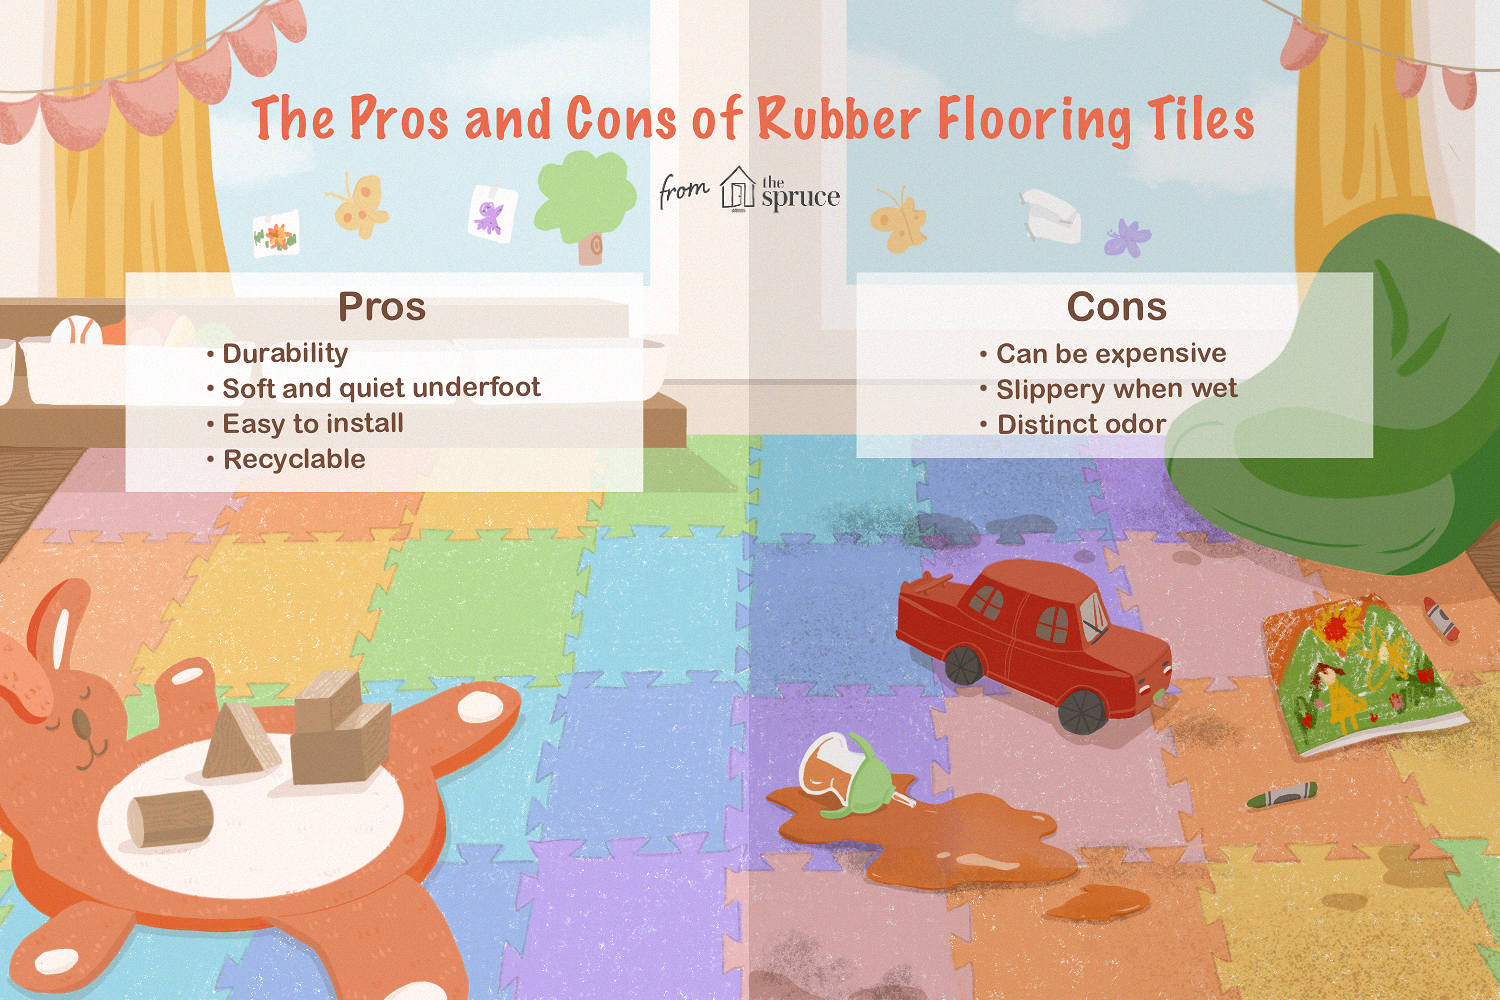 pros and cons of rubber flooring tiles illustration